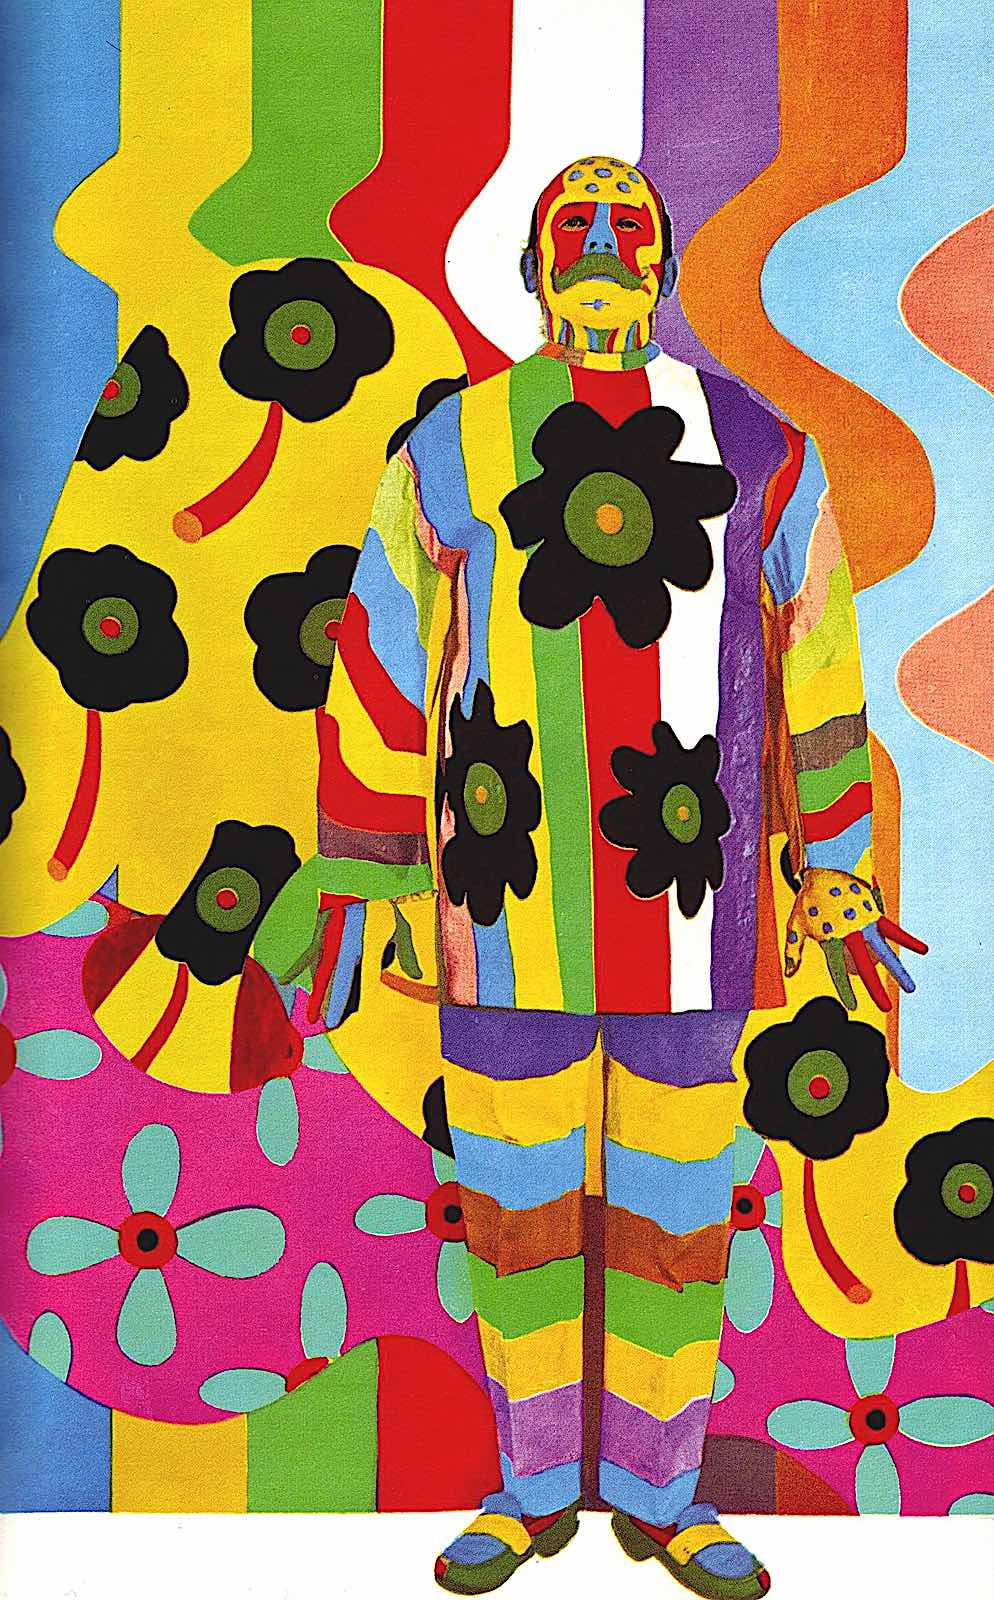 Ito Josue, 1967 multicolor man in a painting, a color photograph